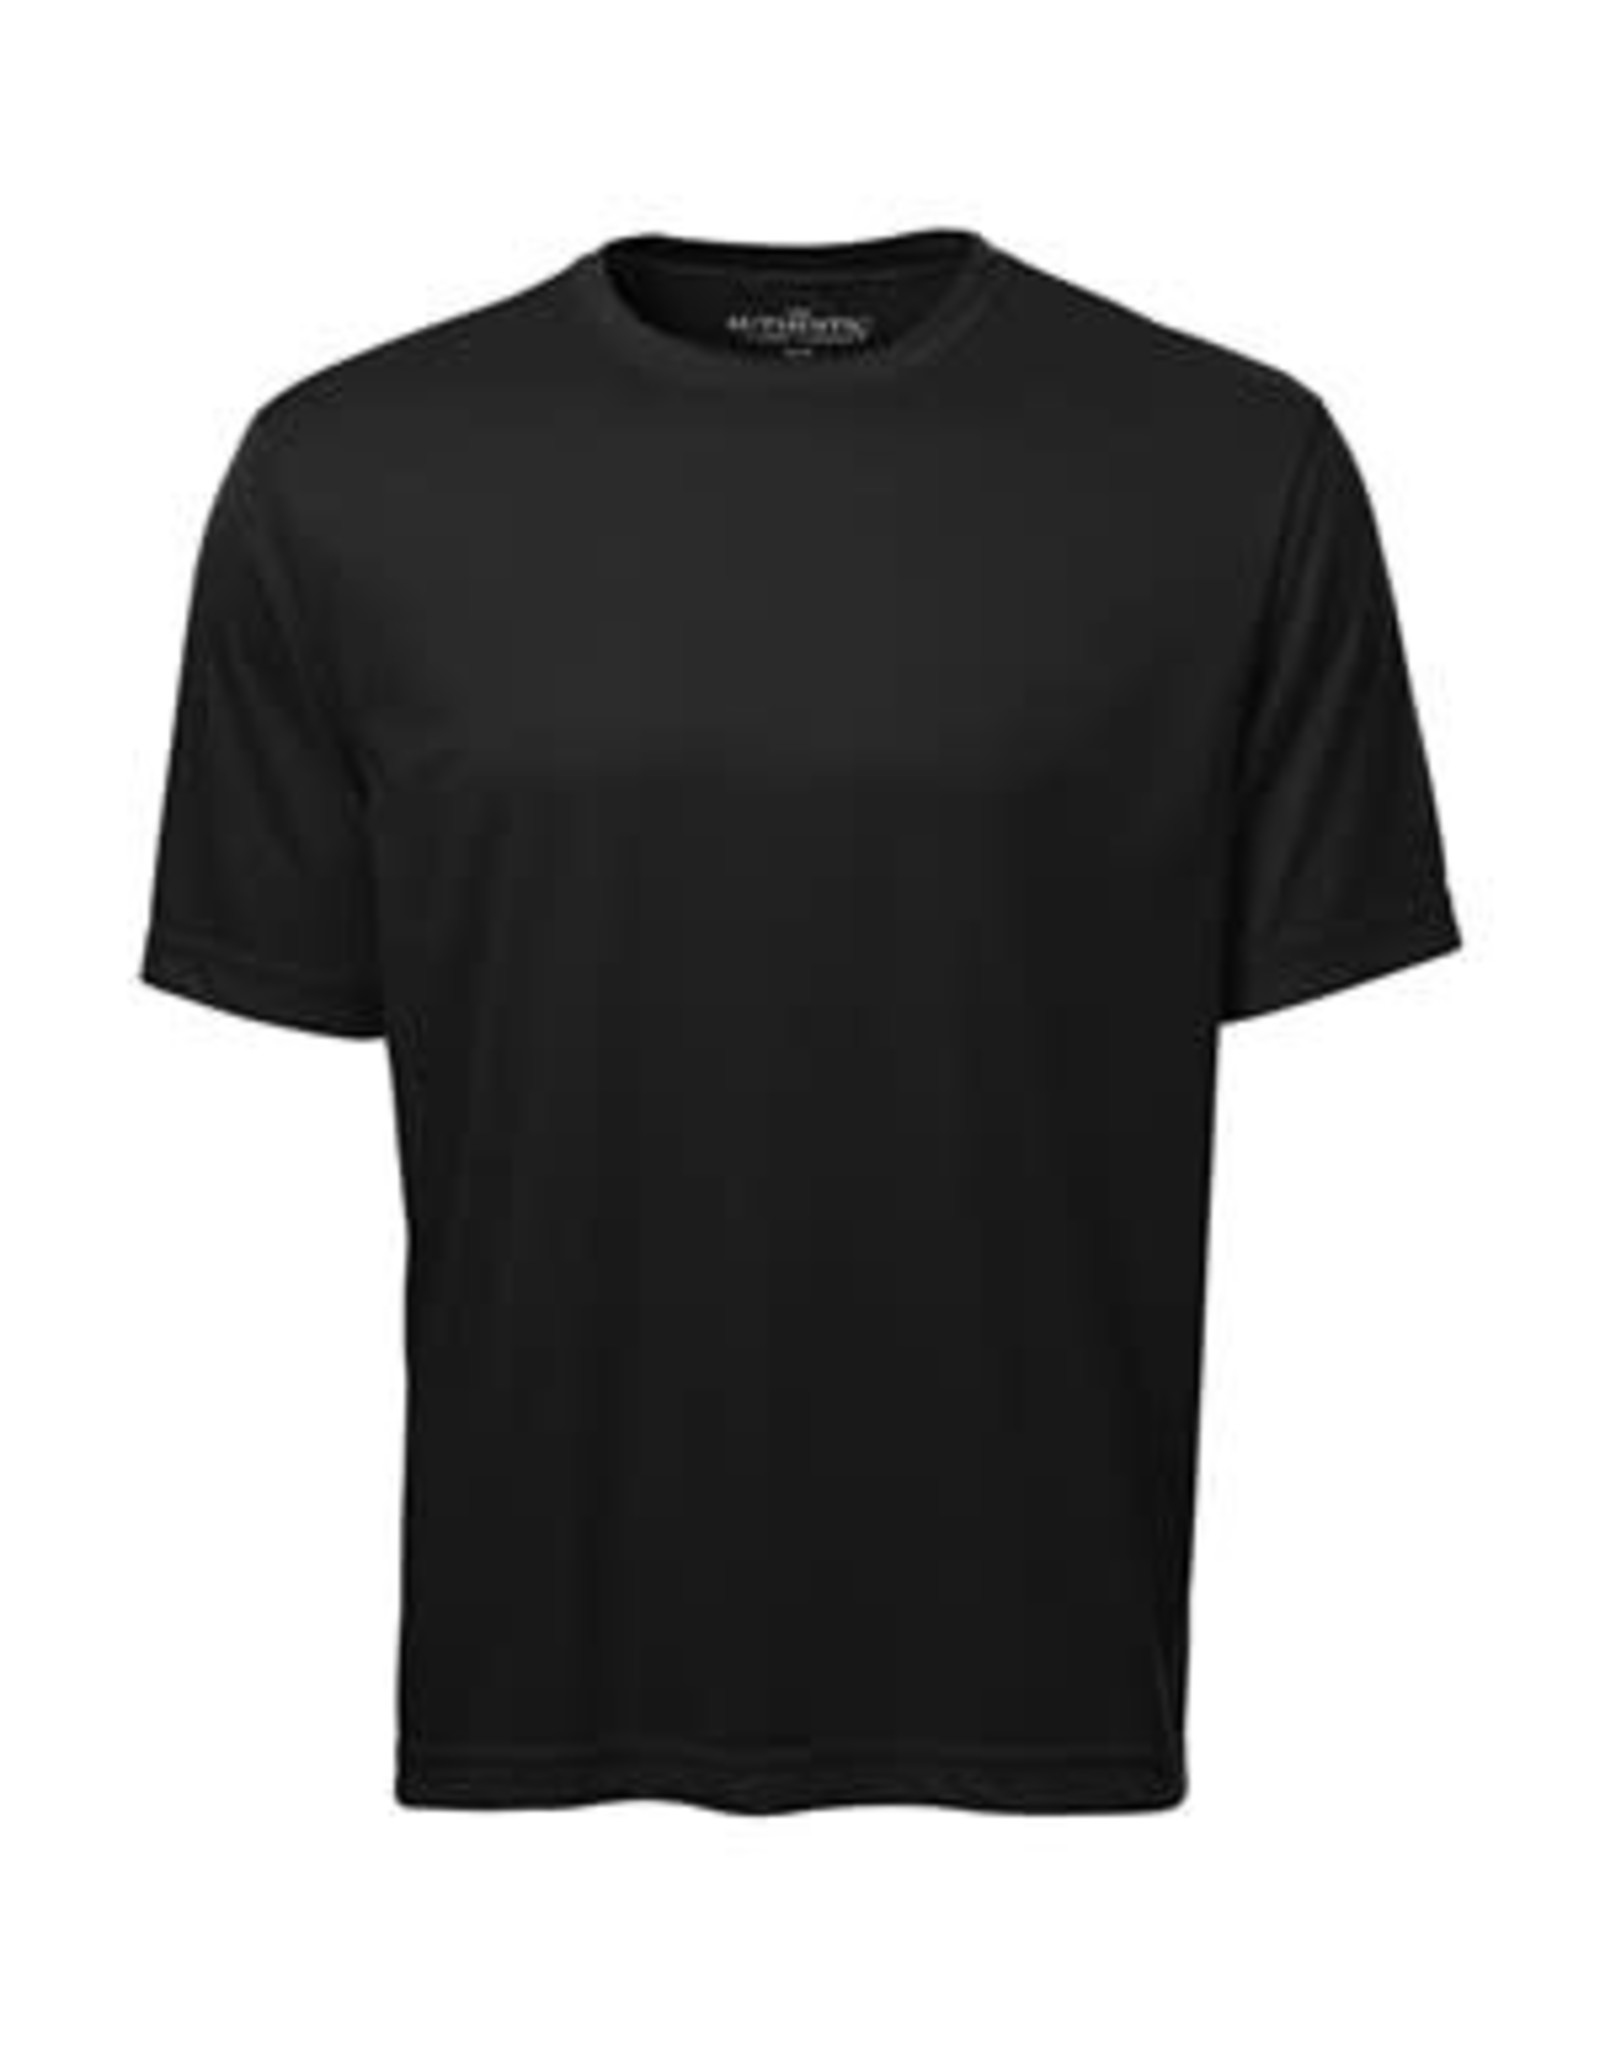 Diving Performance T-Shirt